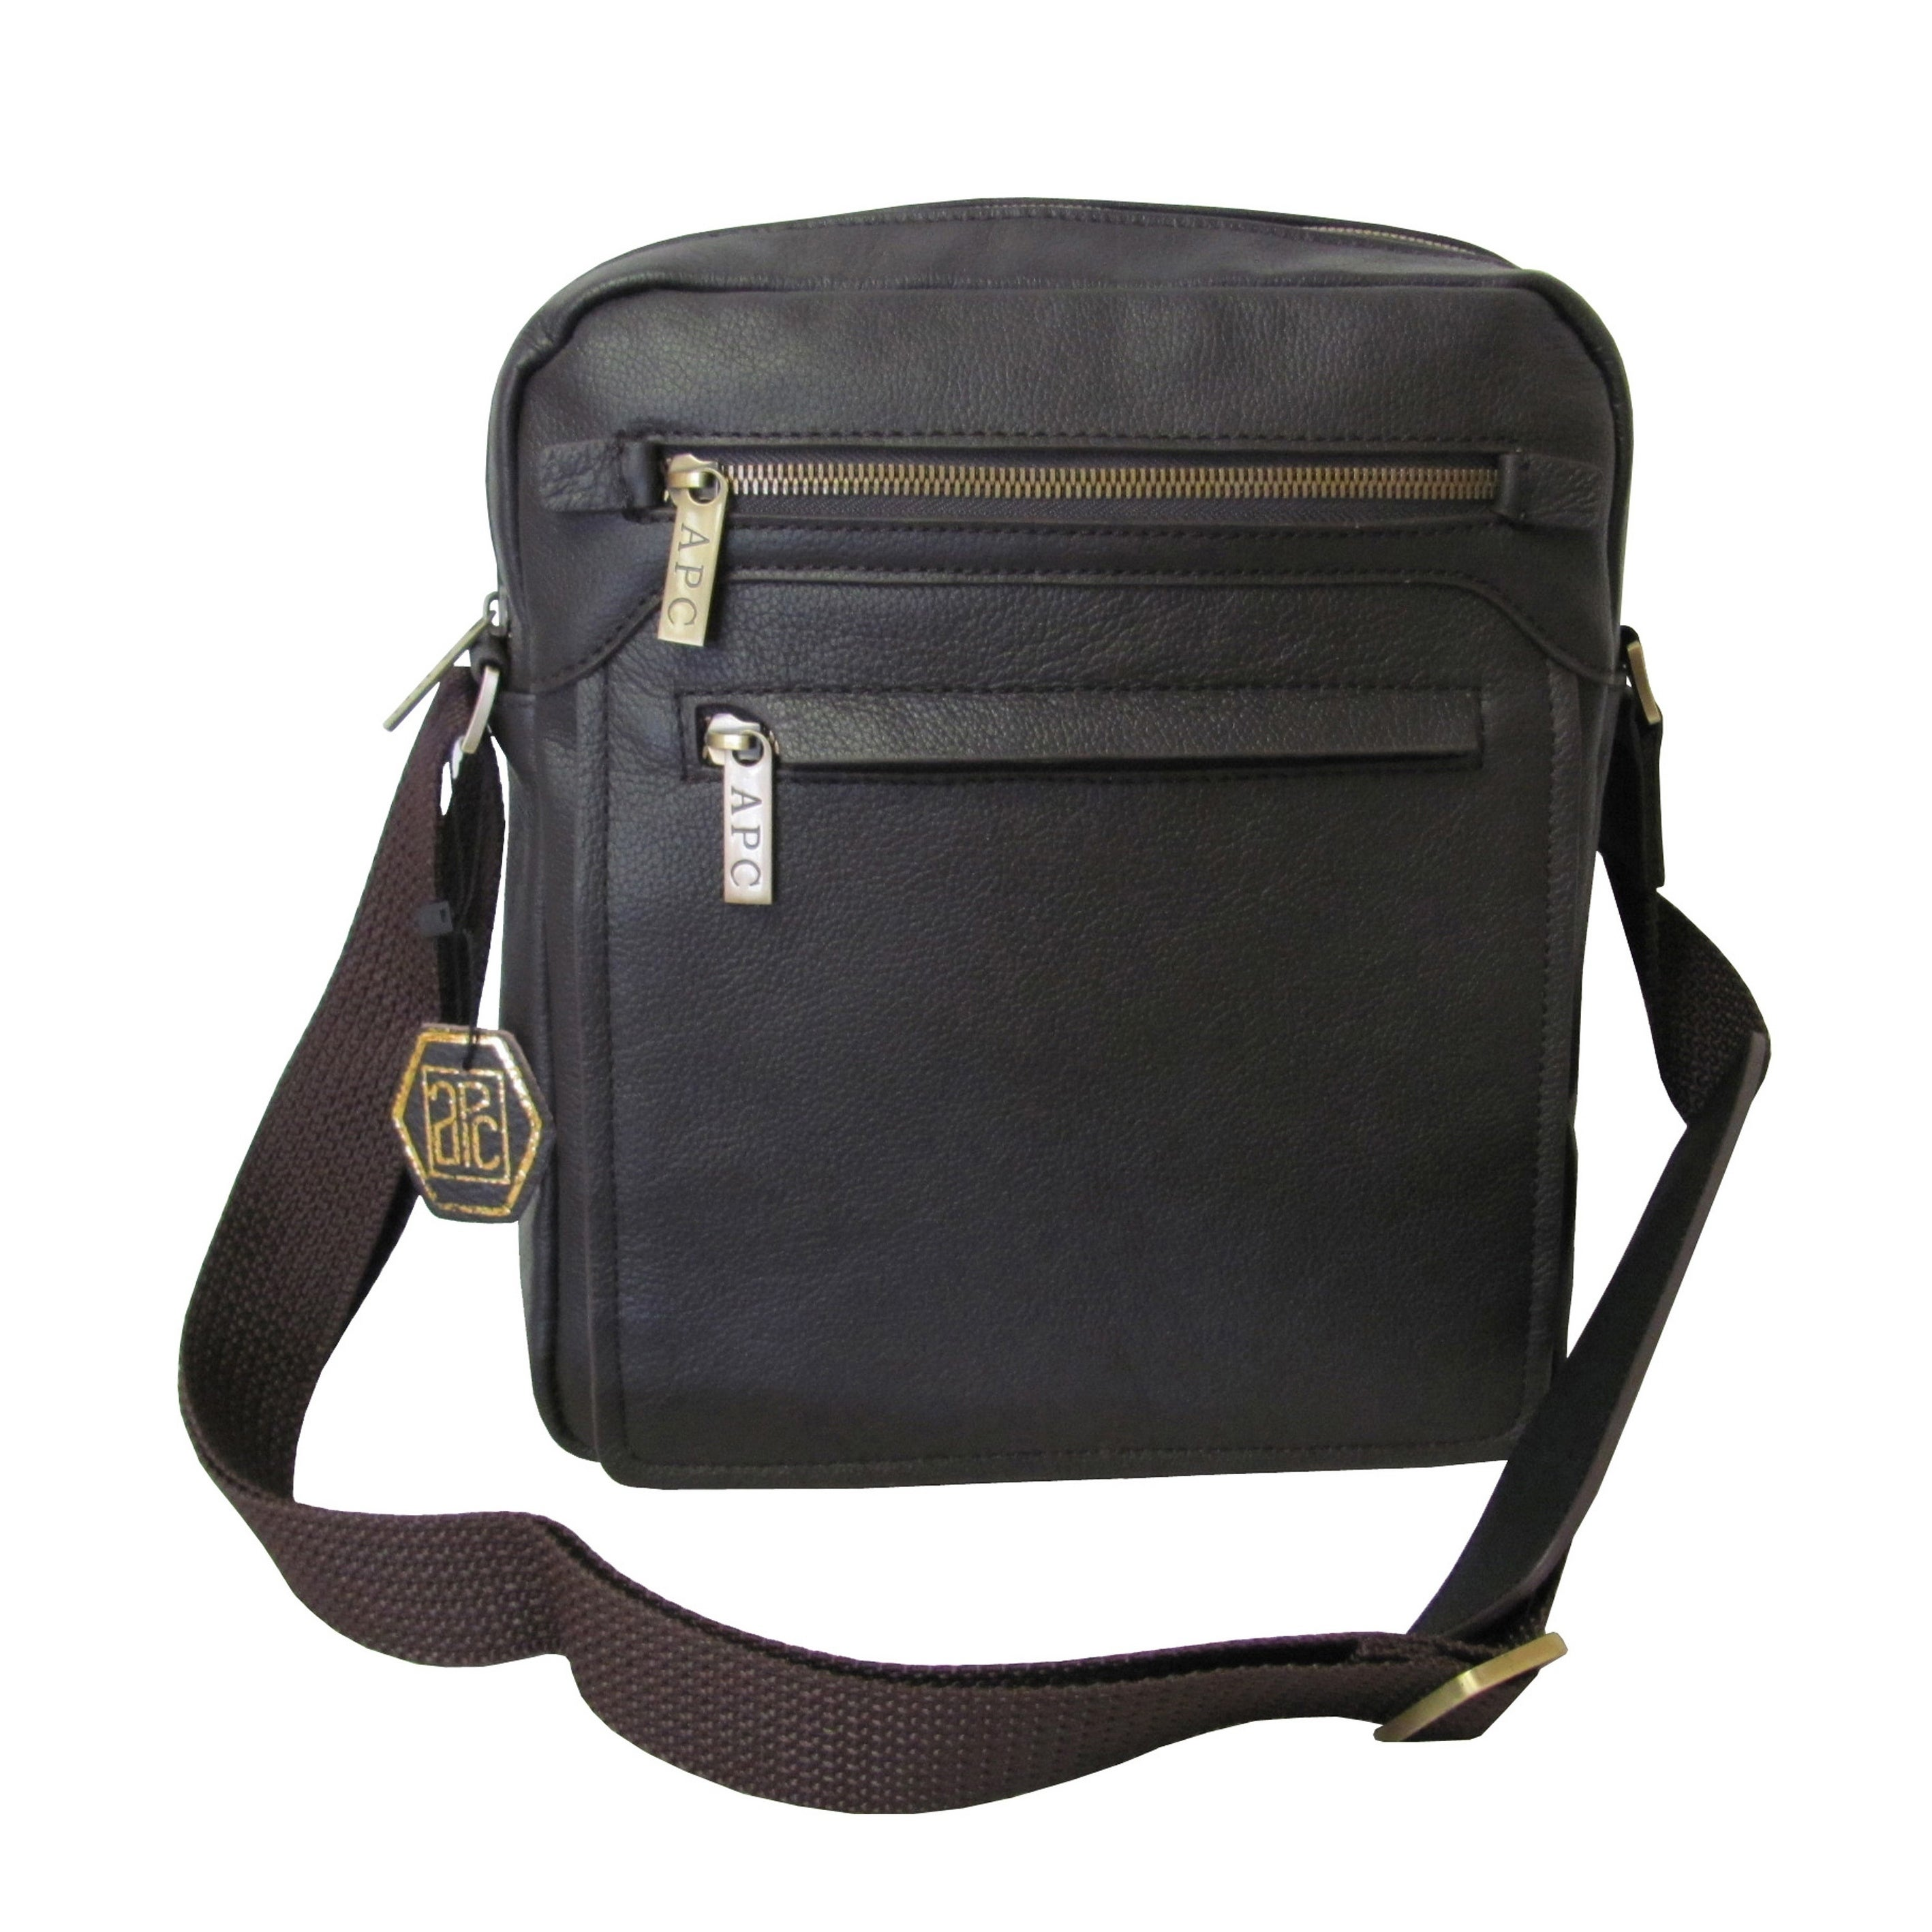 Shop Amerileather Front Flap Leather Women s Messenger Bag with Key Lock - Free  Shipping Today - Overstock.com - 3430500 1c915948b3